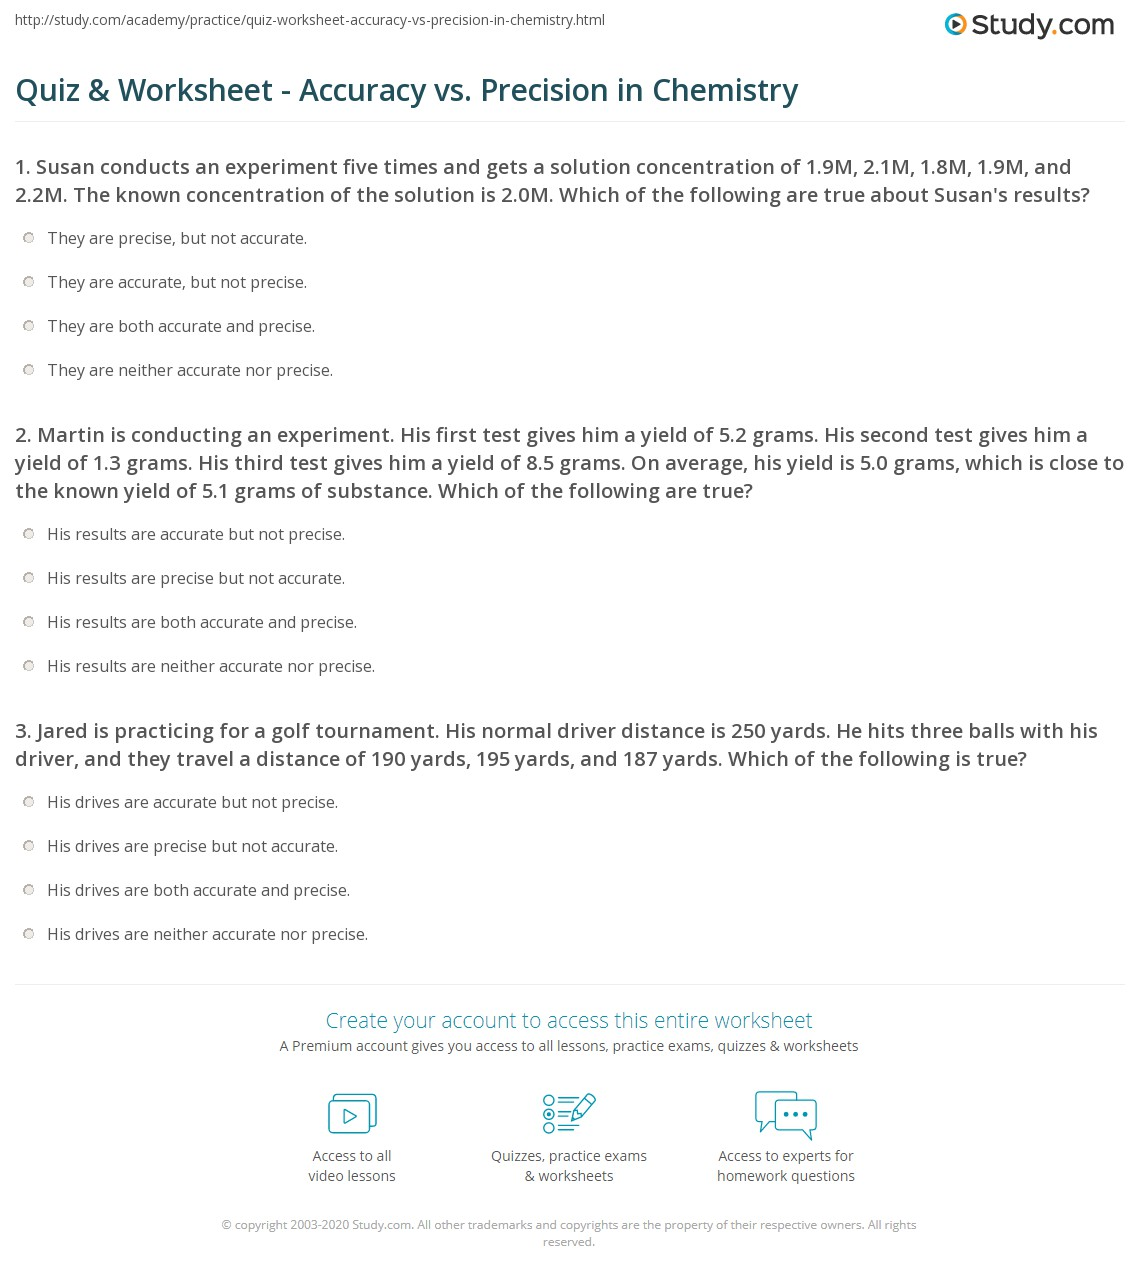 worksheet Precision And Accuracy Worksheet quiz worksheet accuracy vs precision in chemistry study com 1 martin is conducting an experiment his first test gives him a yield of 5 2 grams second 3 grams